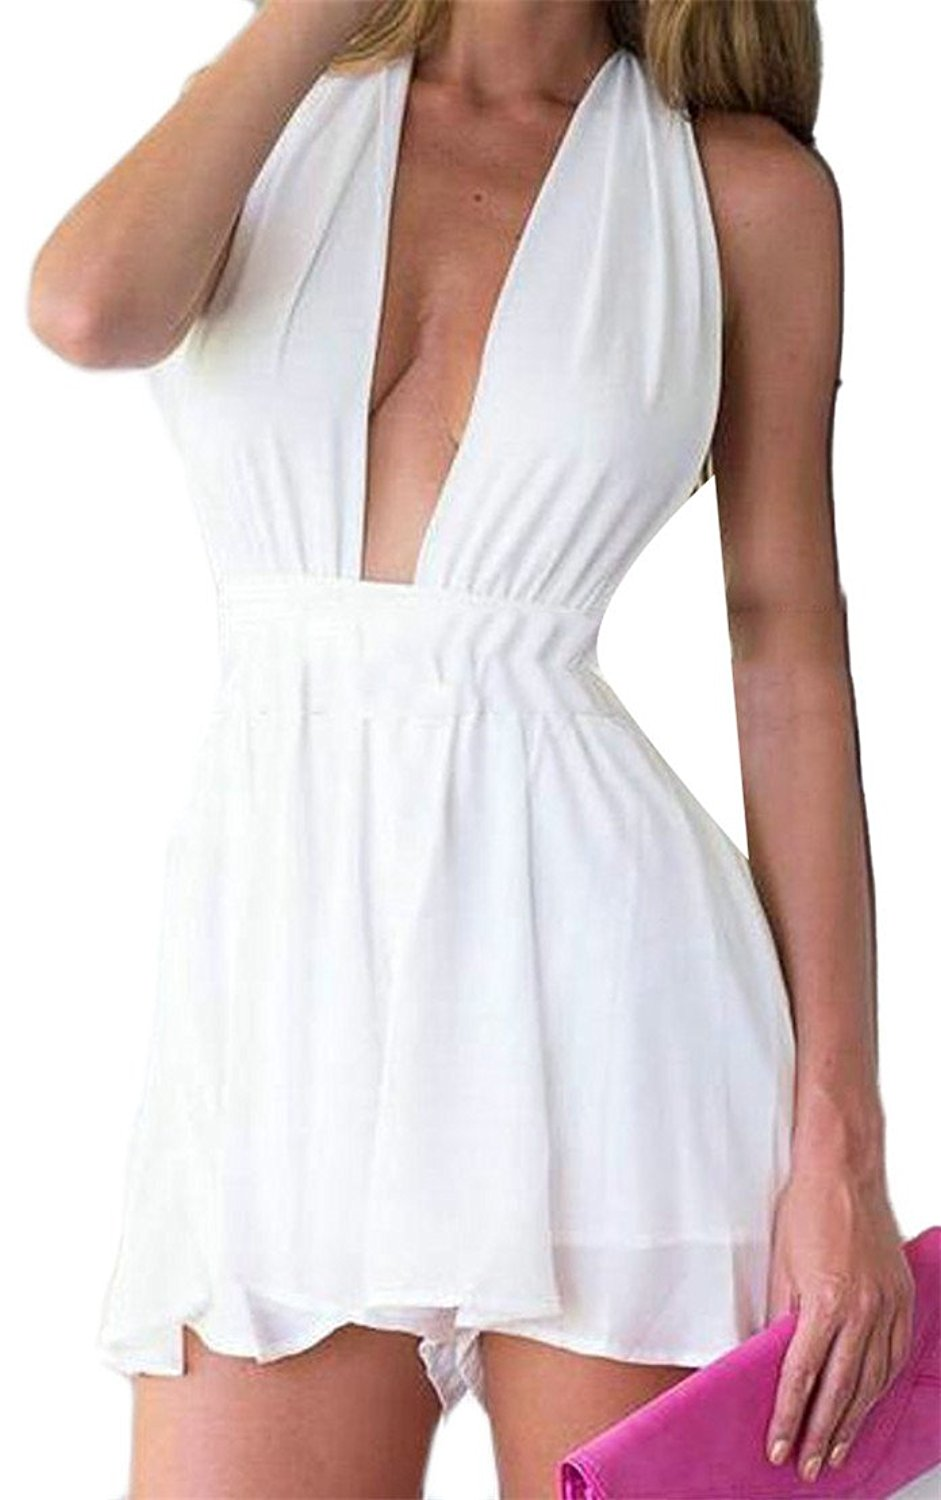 9870aaede615 Get Quotations · Cromoncent Womens Summer Backless Deep V Neck Short  Playsuit Jumpsuits White S